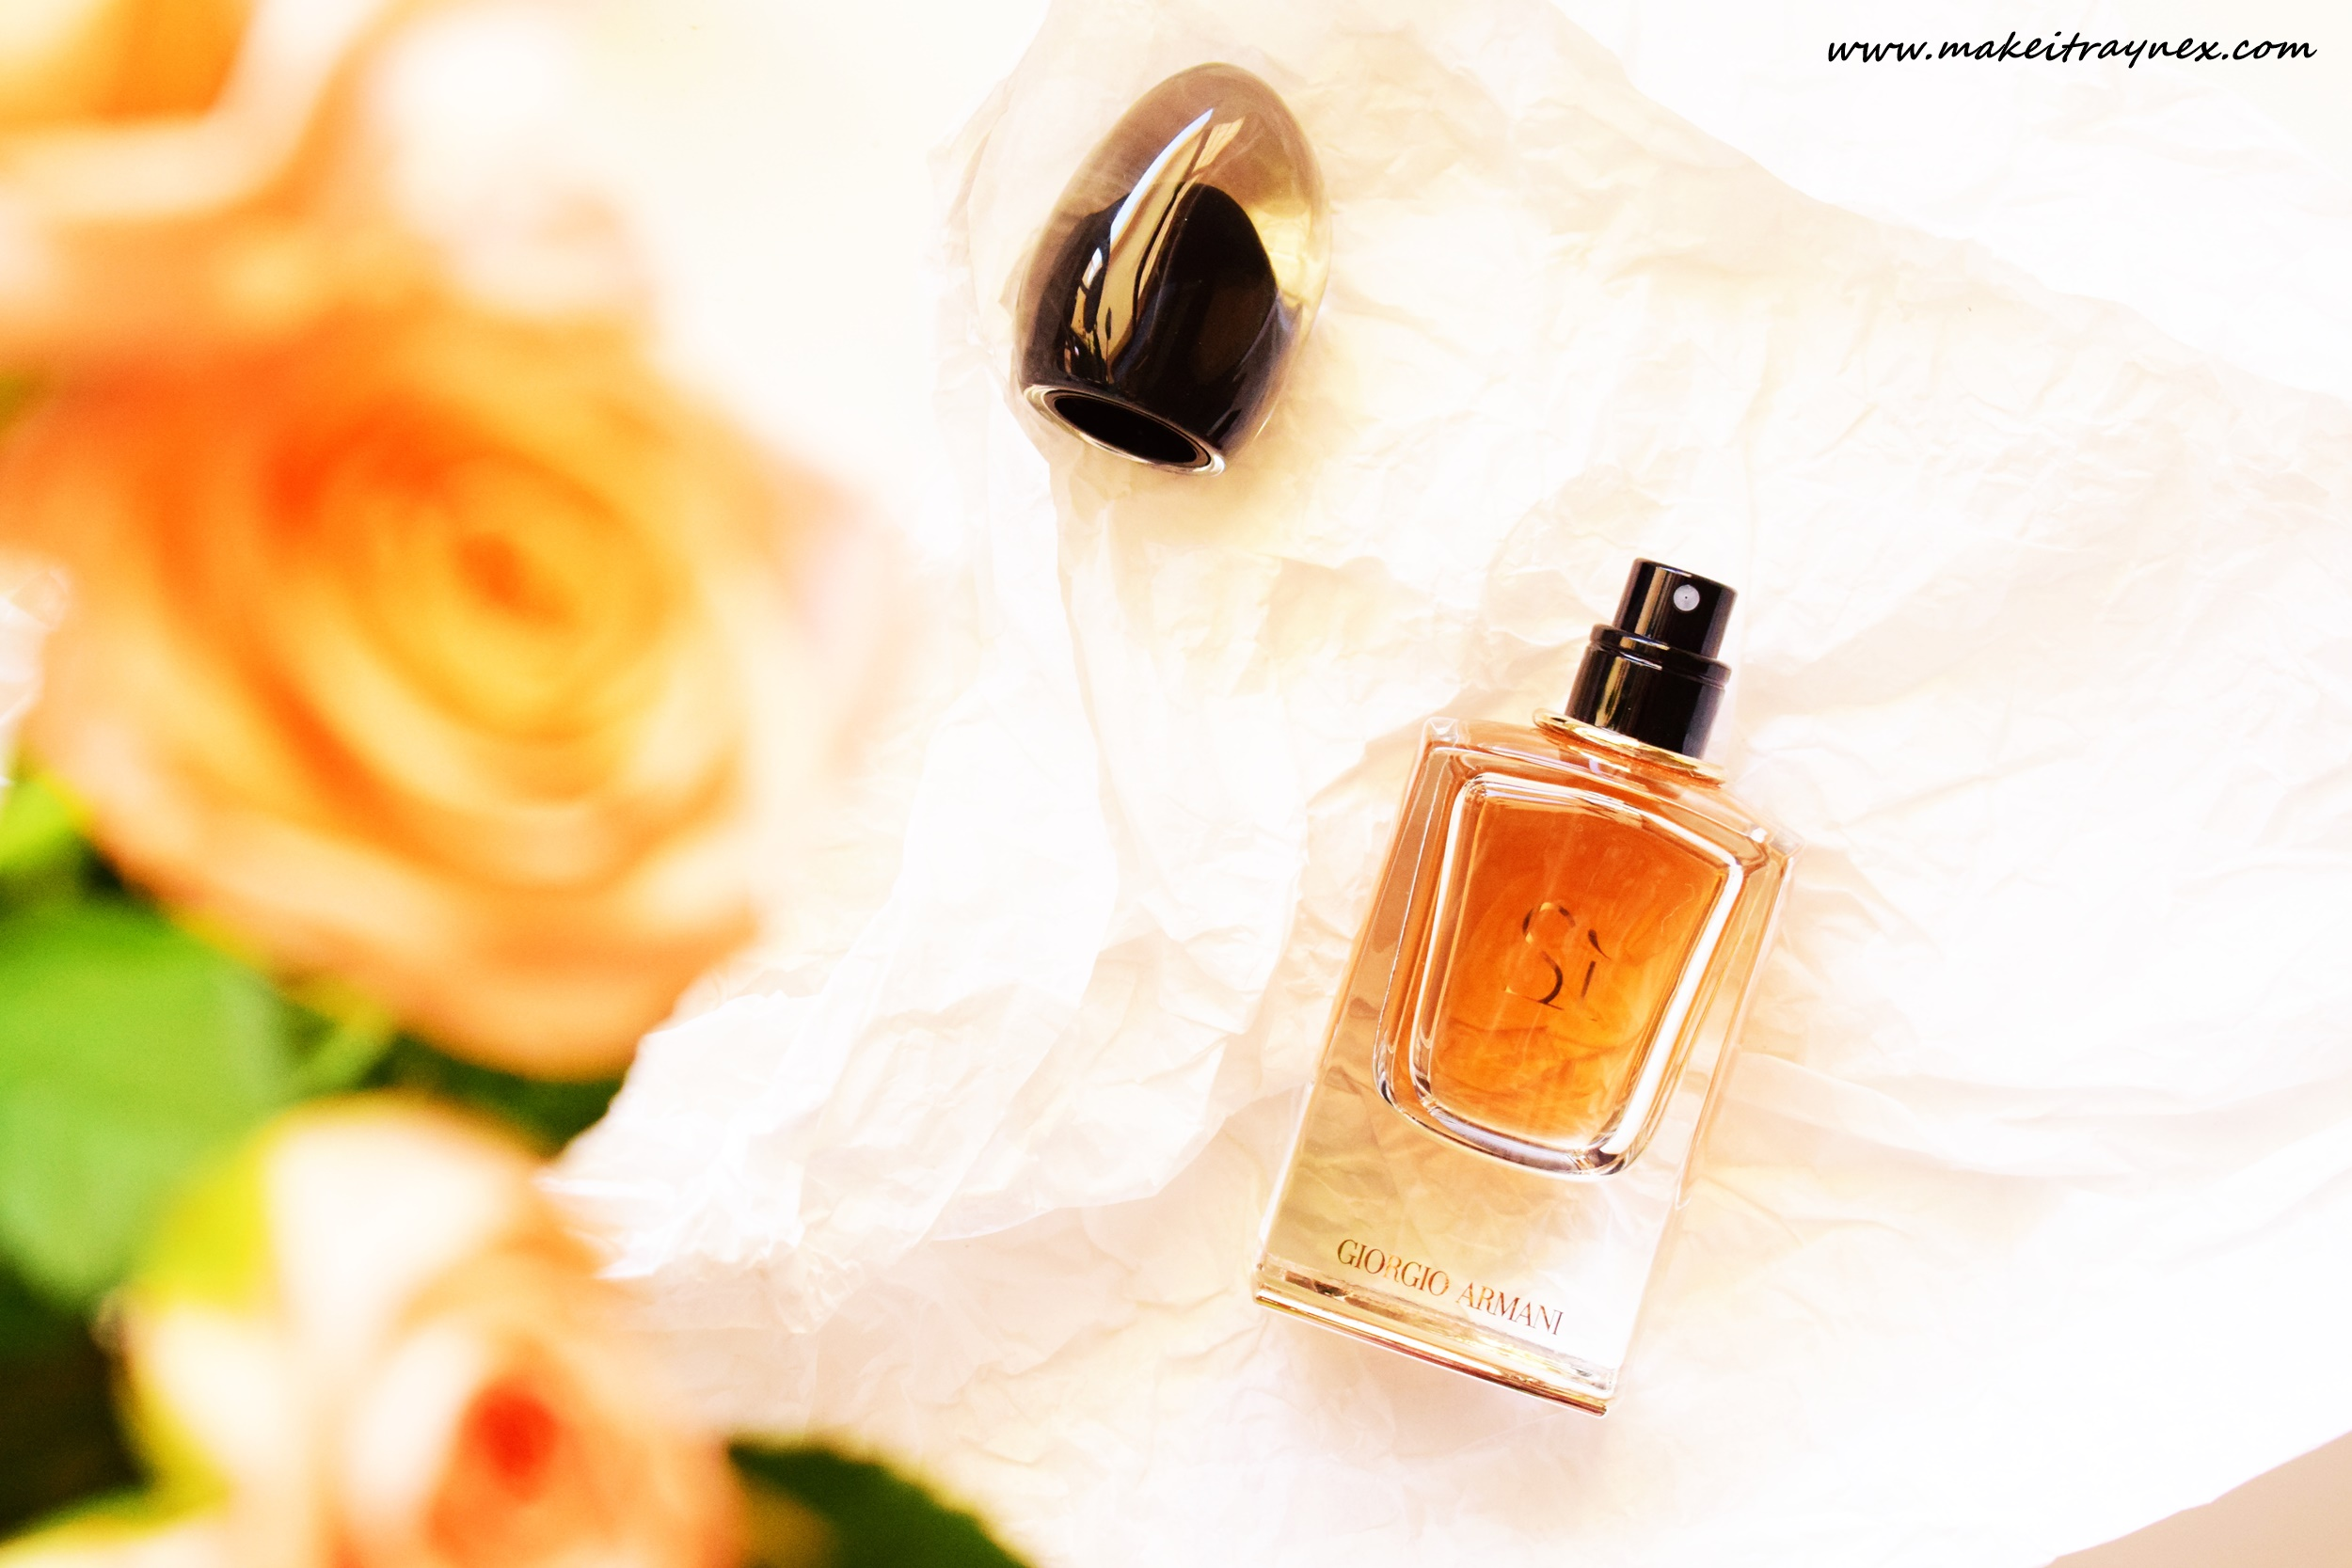 Armani Si Le Parfum from Giorgio Armani {THE FRAGRANCE CHRONICLES}